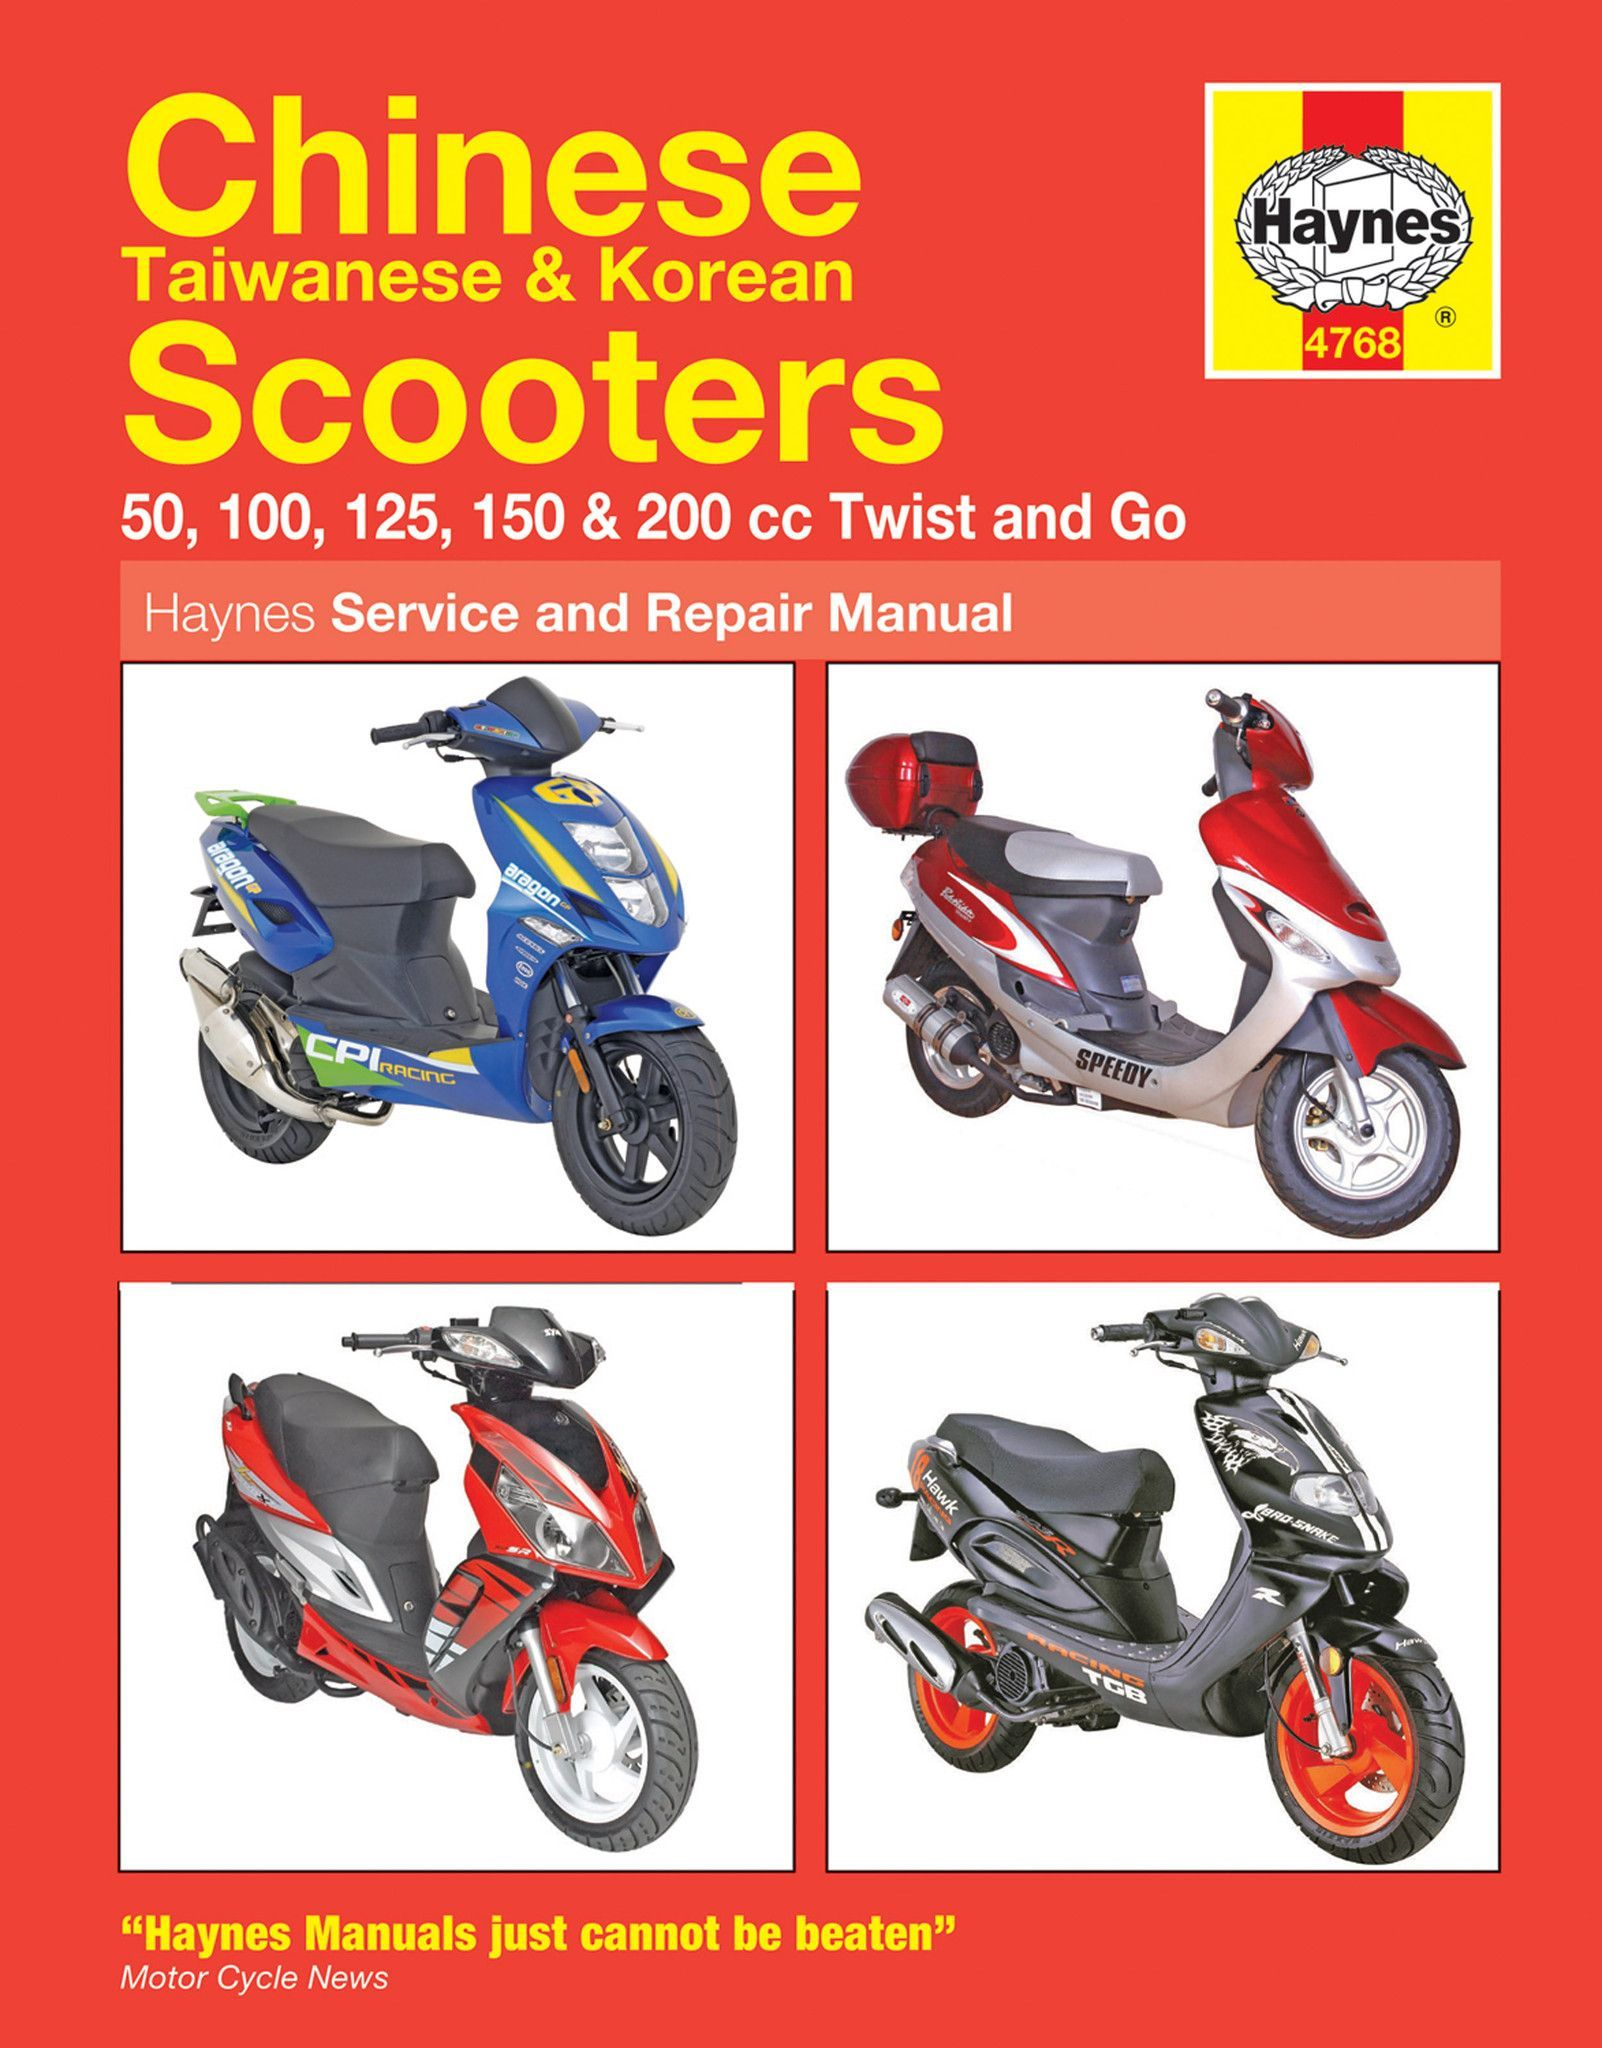 Chinese Atv Service Manual 200cc User Guide That Easy To Read Wiring Diagram Haynes M4768 Repair For 2004 14 Taiwanese And Korean Rh Pinterest Com 250cc